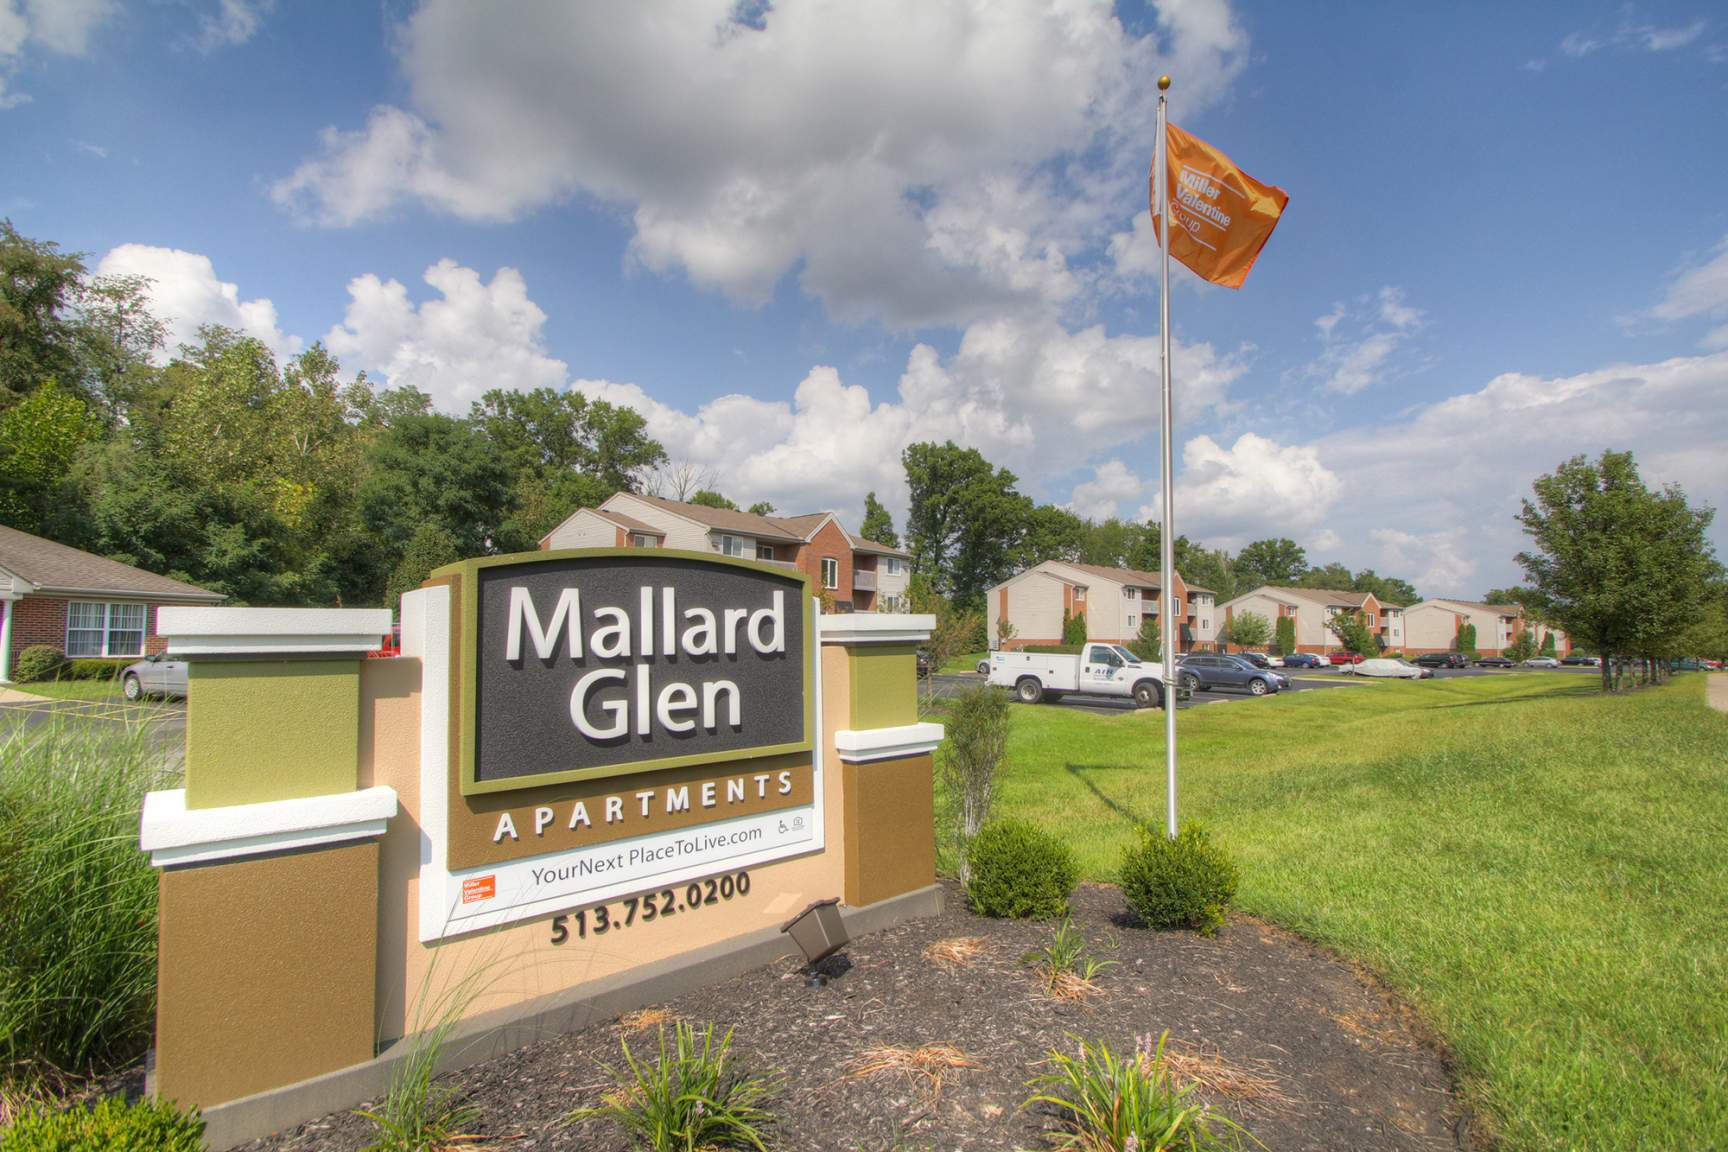 Mallard Glen Apartments - Affordable Community